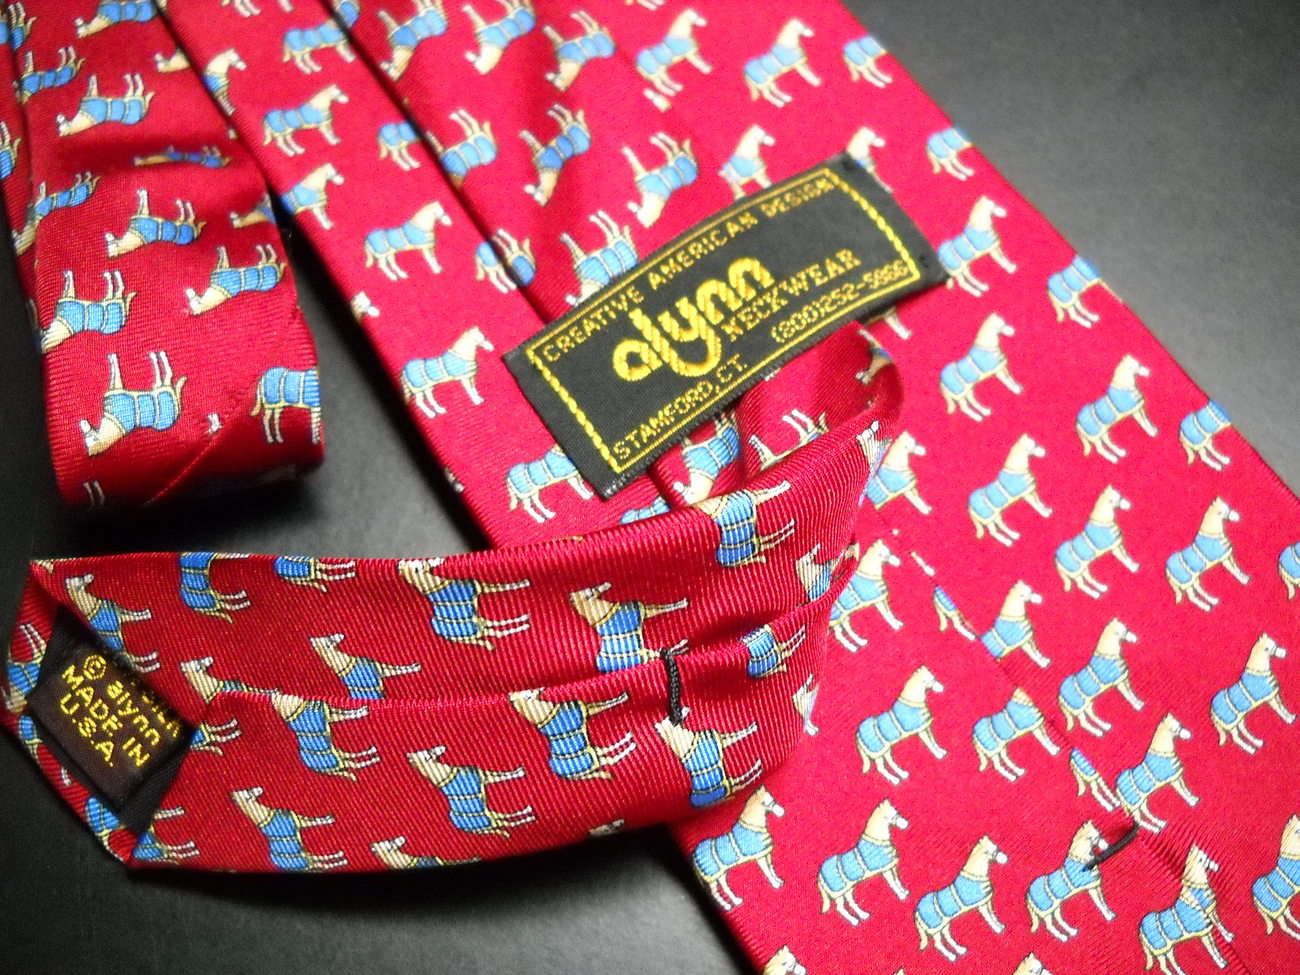 Alynn Neckwear Neck Tie Silk Tiny Repeating Ponys in Blue Blanket on Bright Red image 6